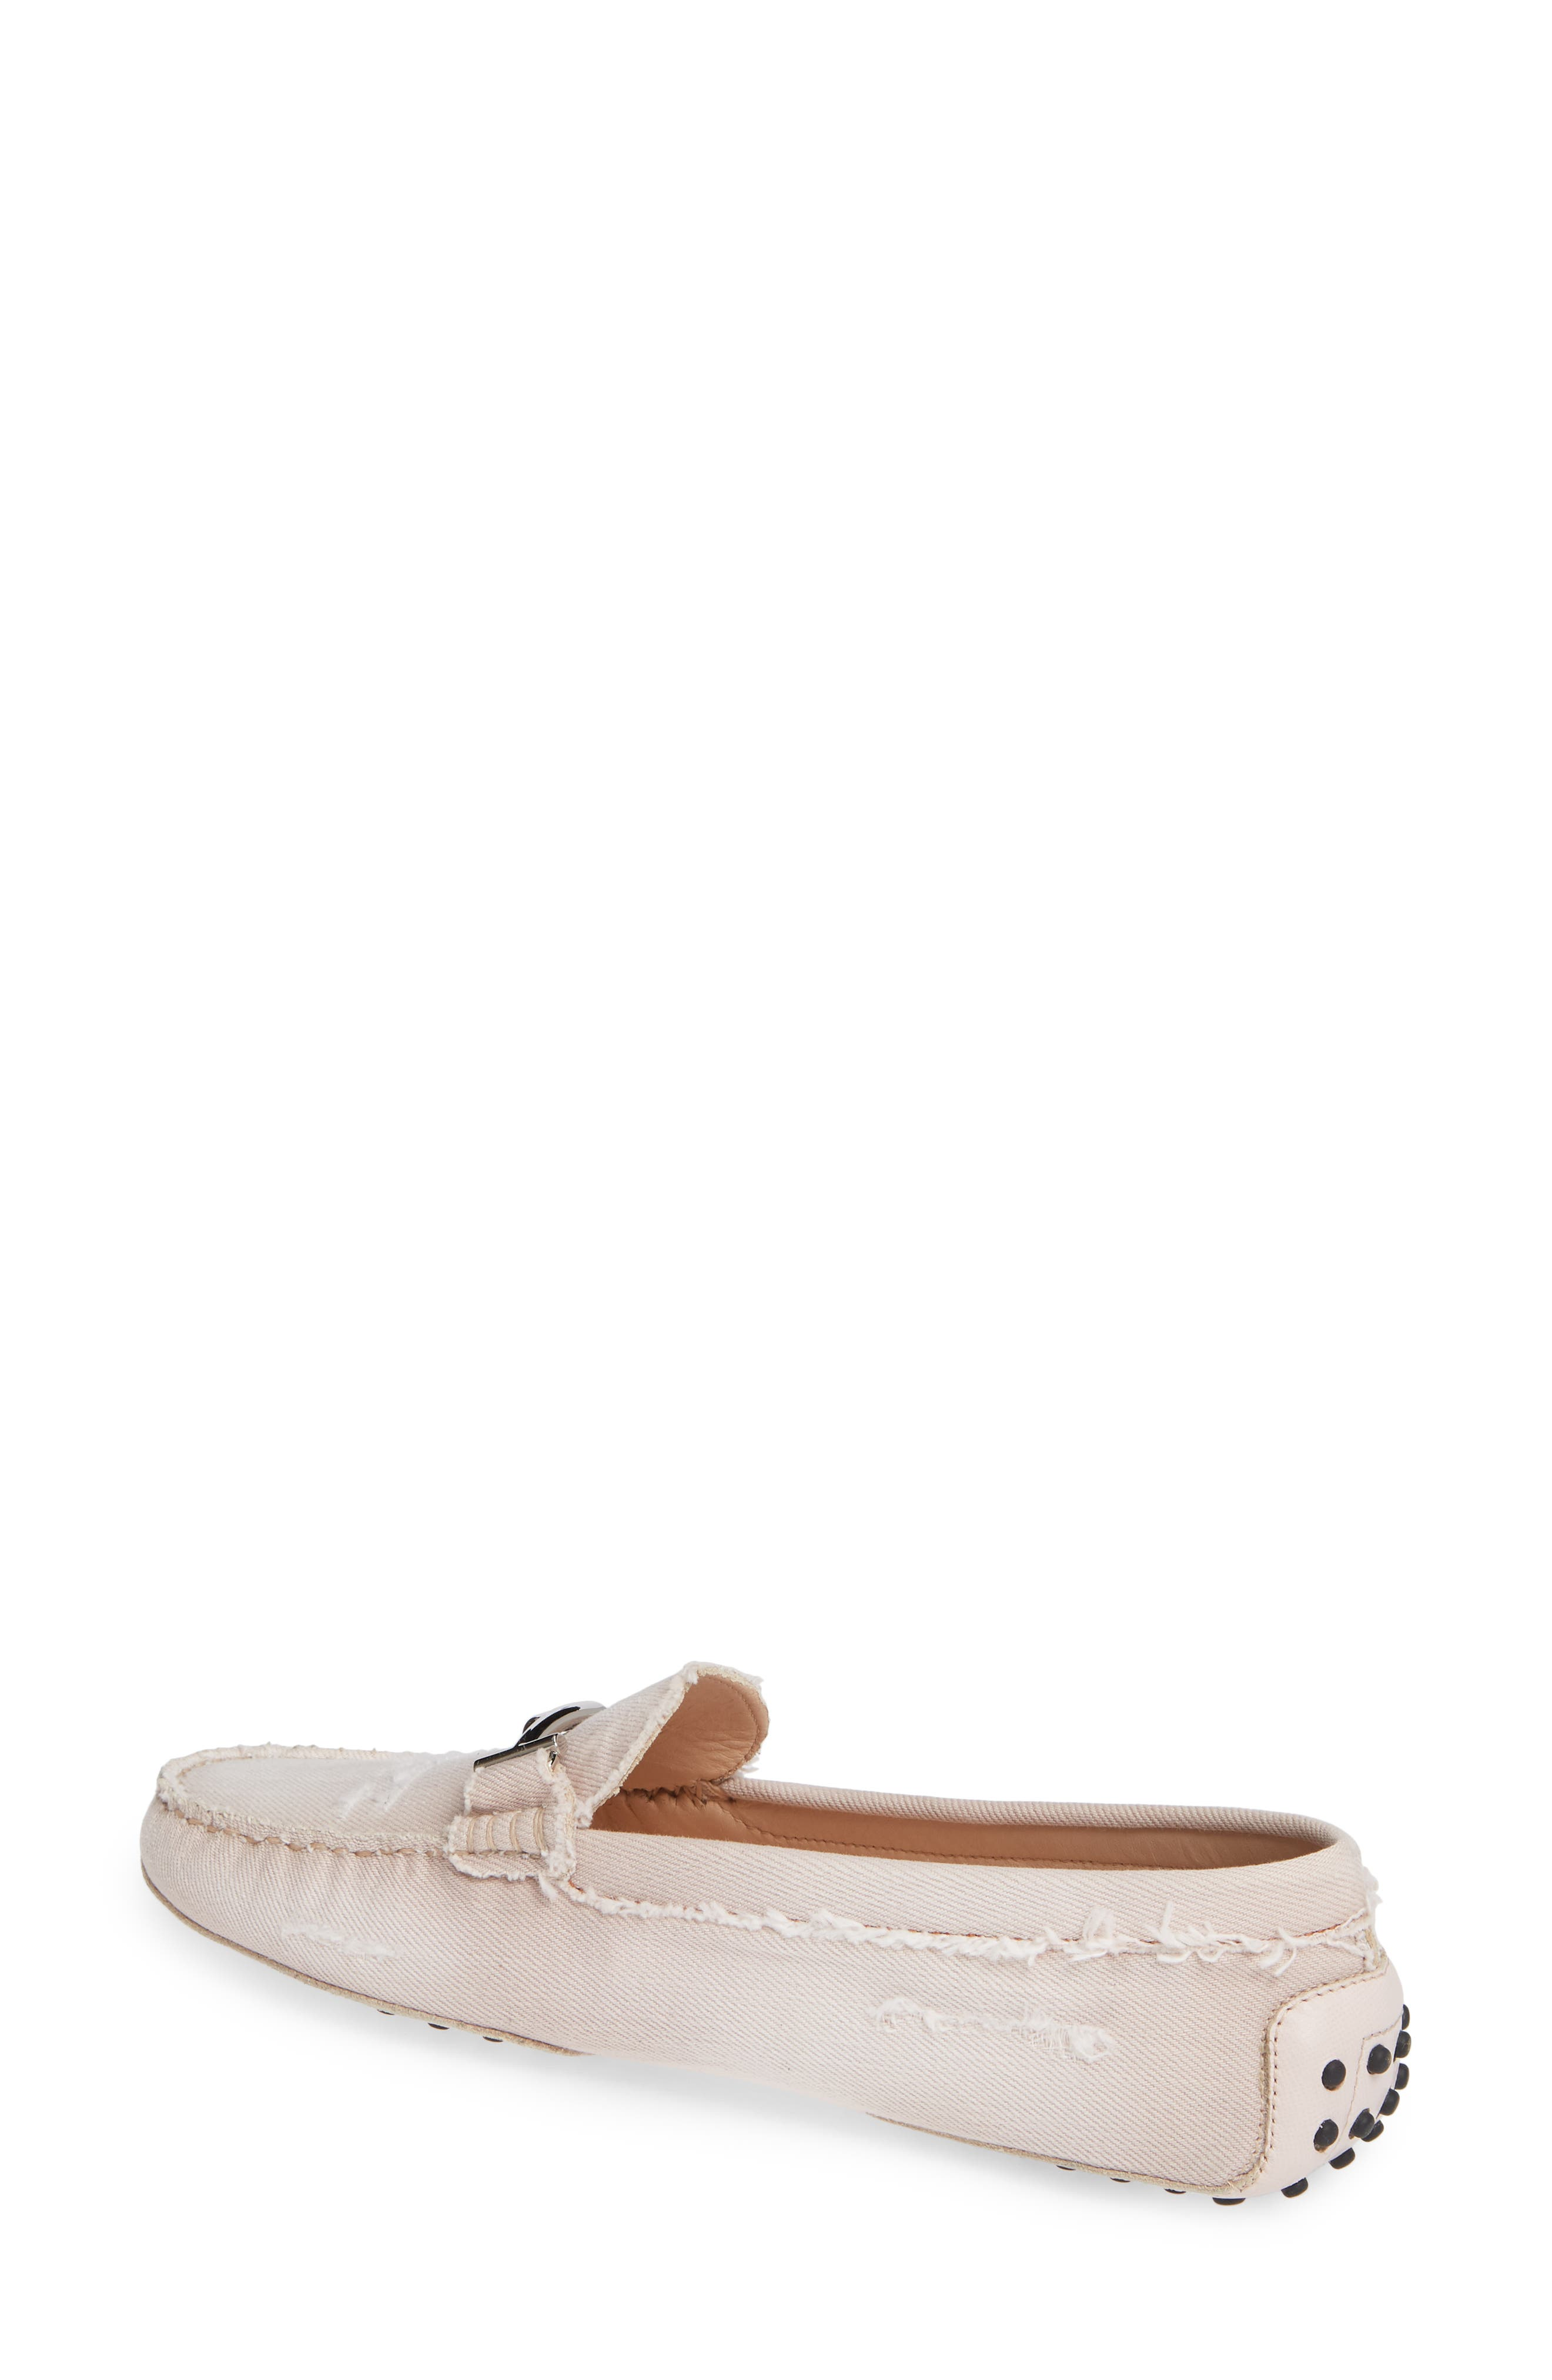 a4943bcdcc Women's Tod's Shoes | Nordstrom